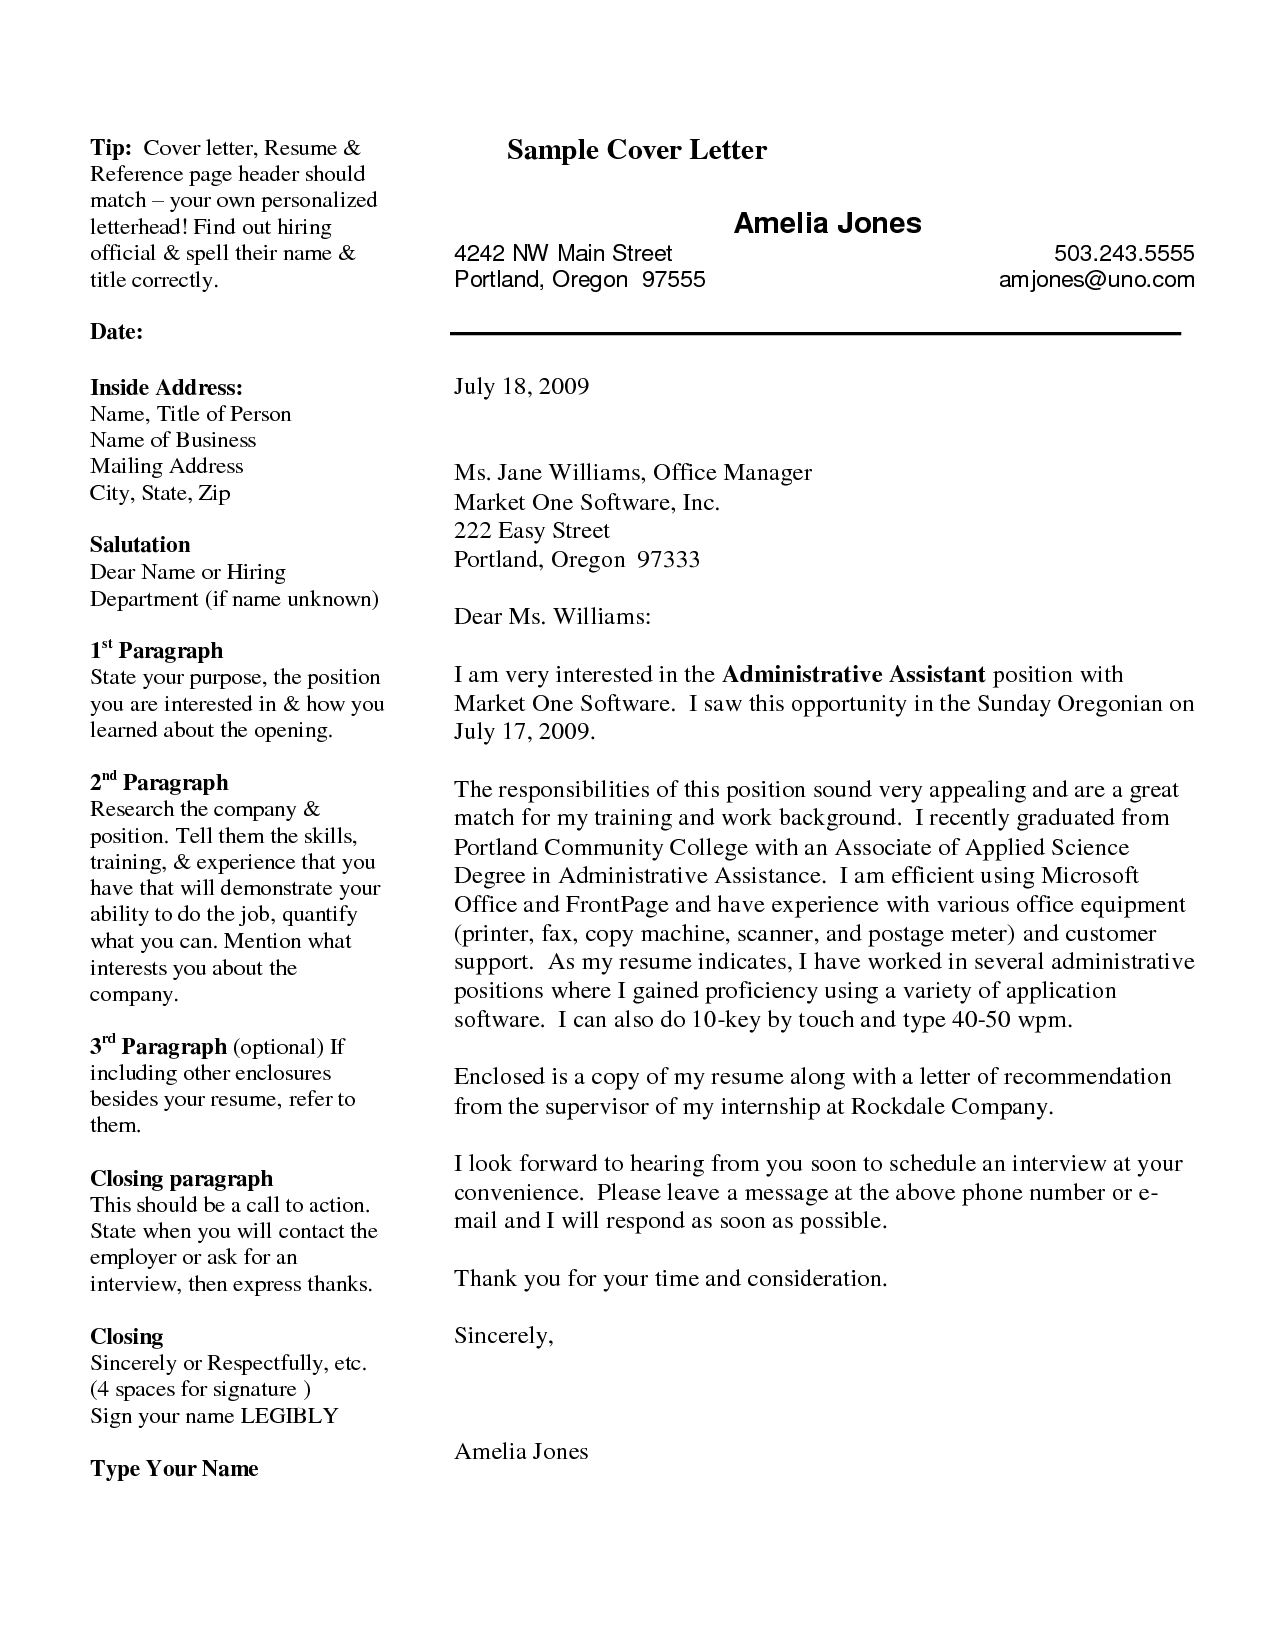 Professional resume cover letter samplesprofessional resume cover professional resume cover letter samplesprofessional resume cover letter samples professional resume cover letter sampleshow madrichimfo Choice Image